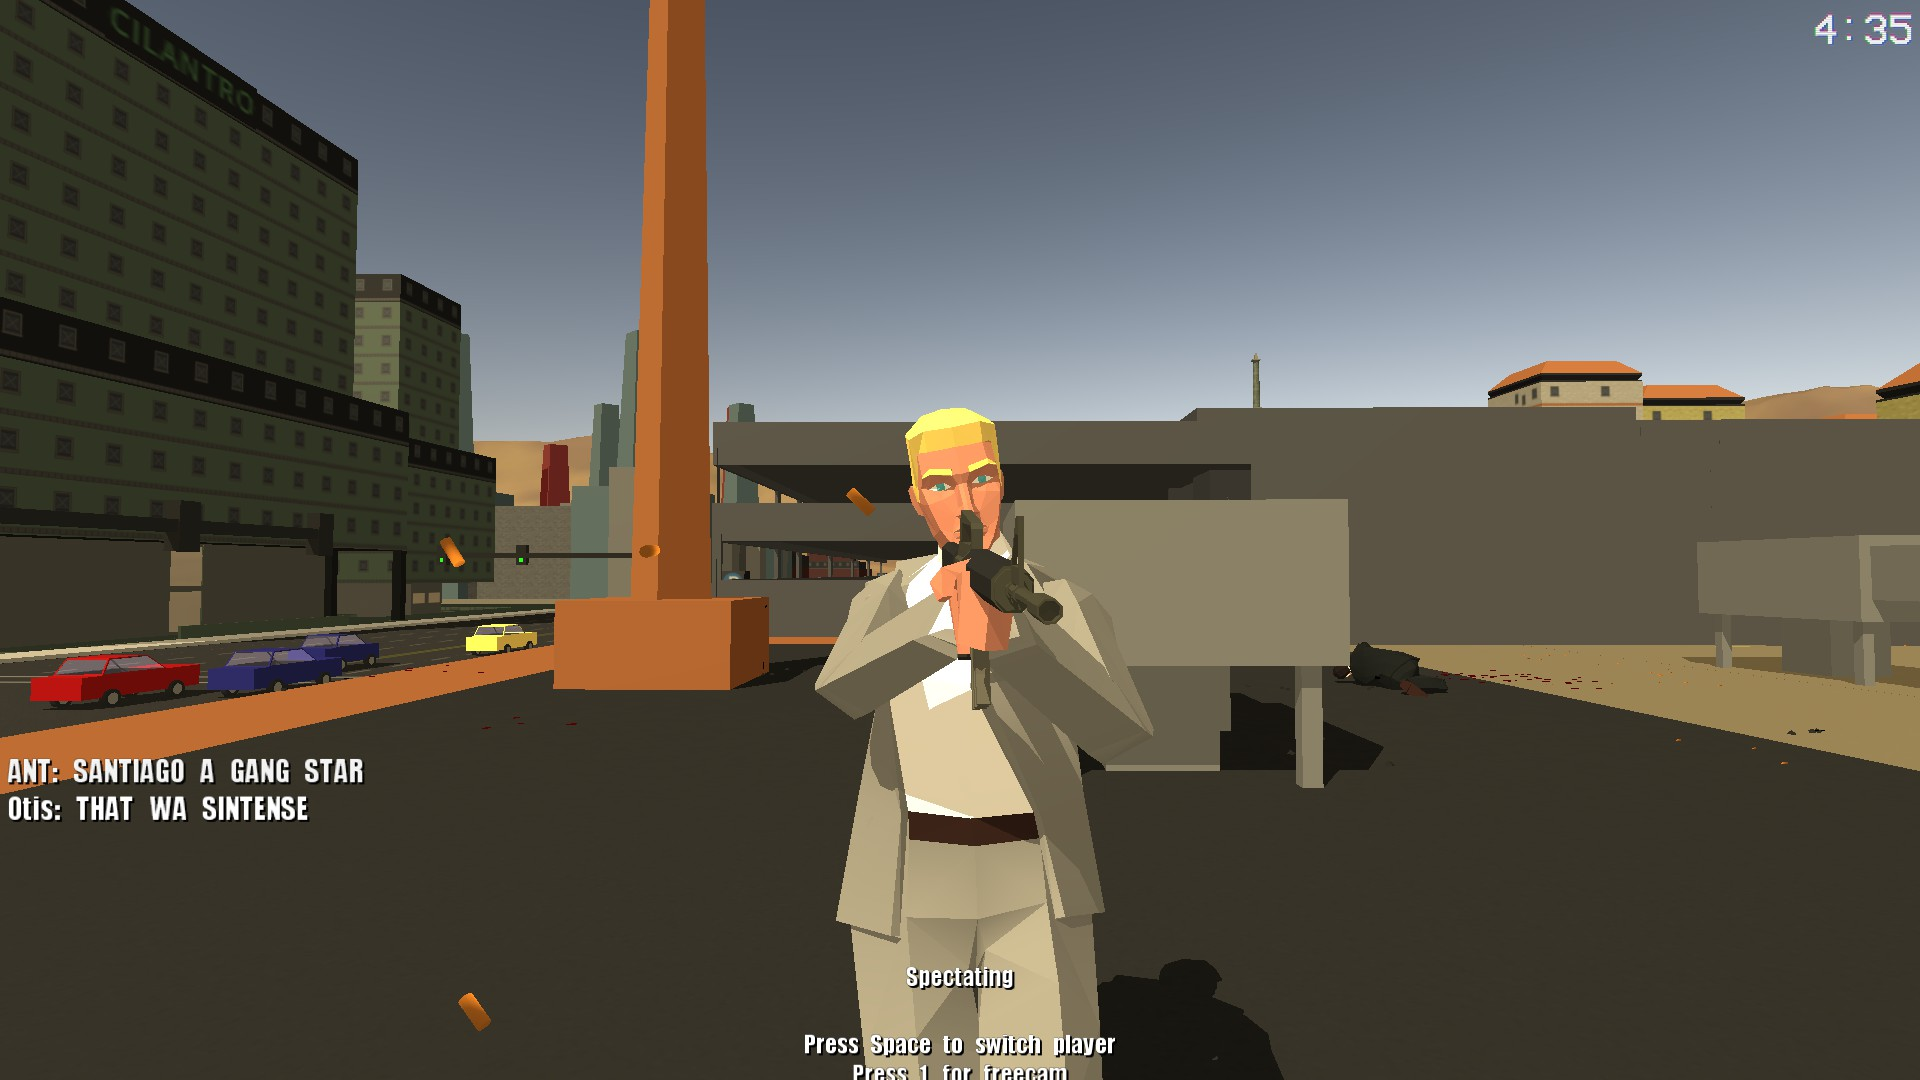 Multiplayer FPS Sub Rosa has come out of hiding with a publicly listed Steam page